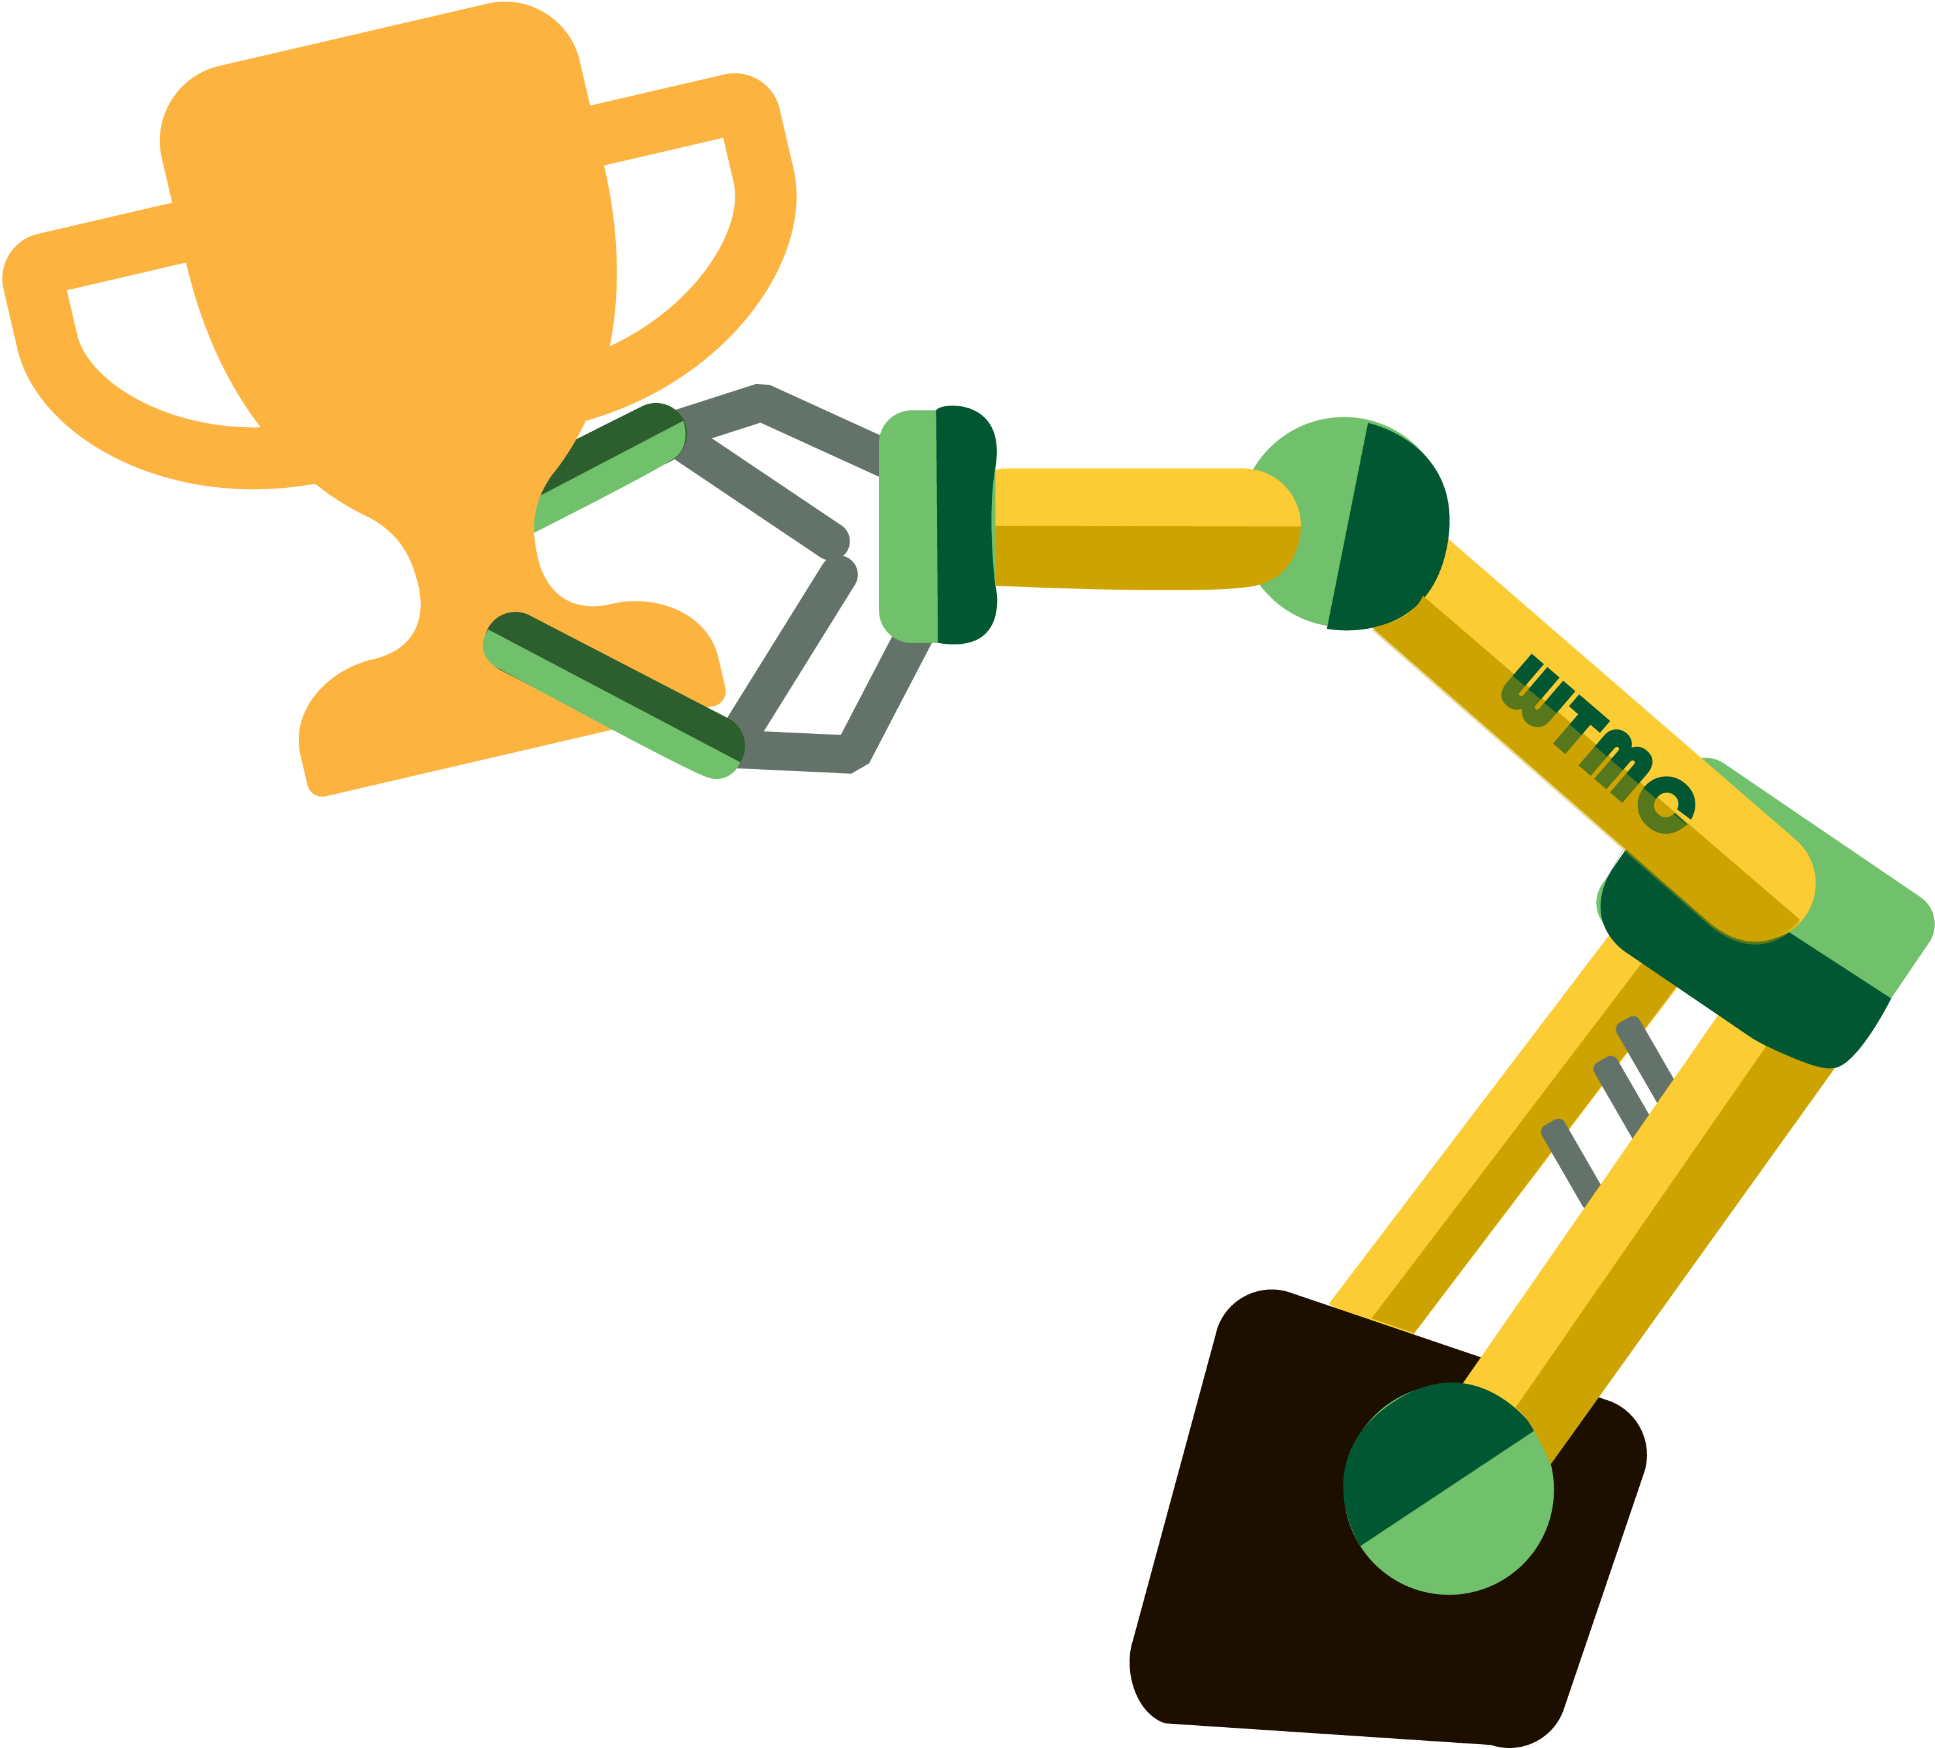 Robotic Arm Holding A Trophy In Its Claw Clipart.